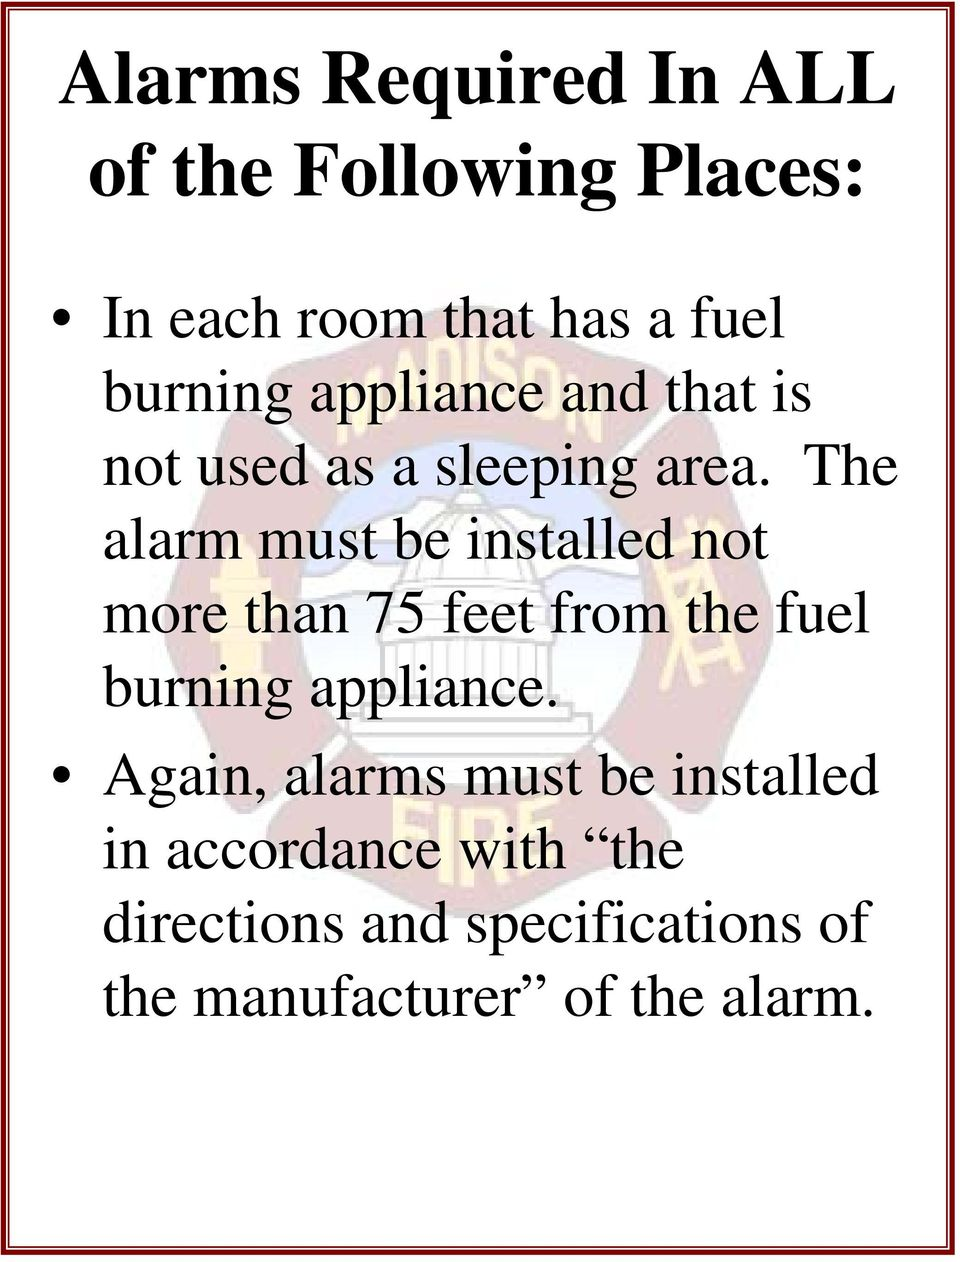 The alarm must be installed not more than 75 feet from the fuel burning appliance.